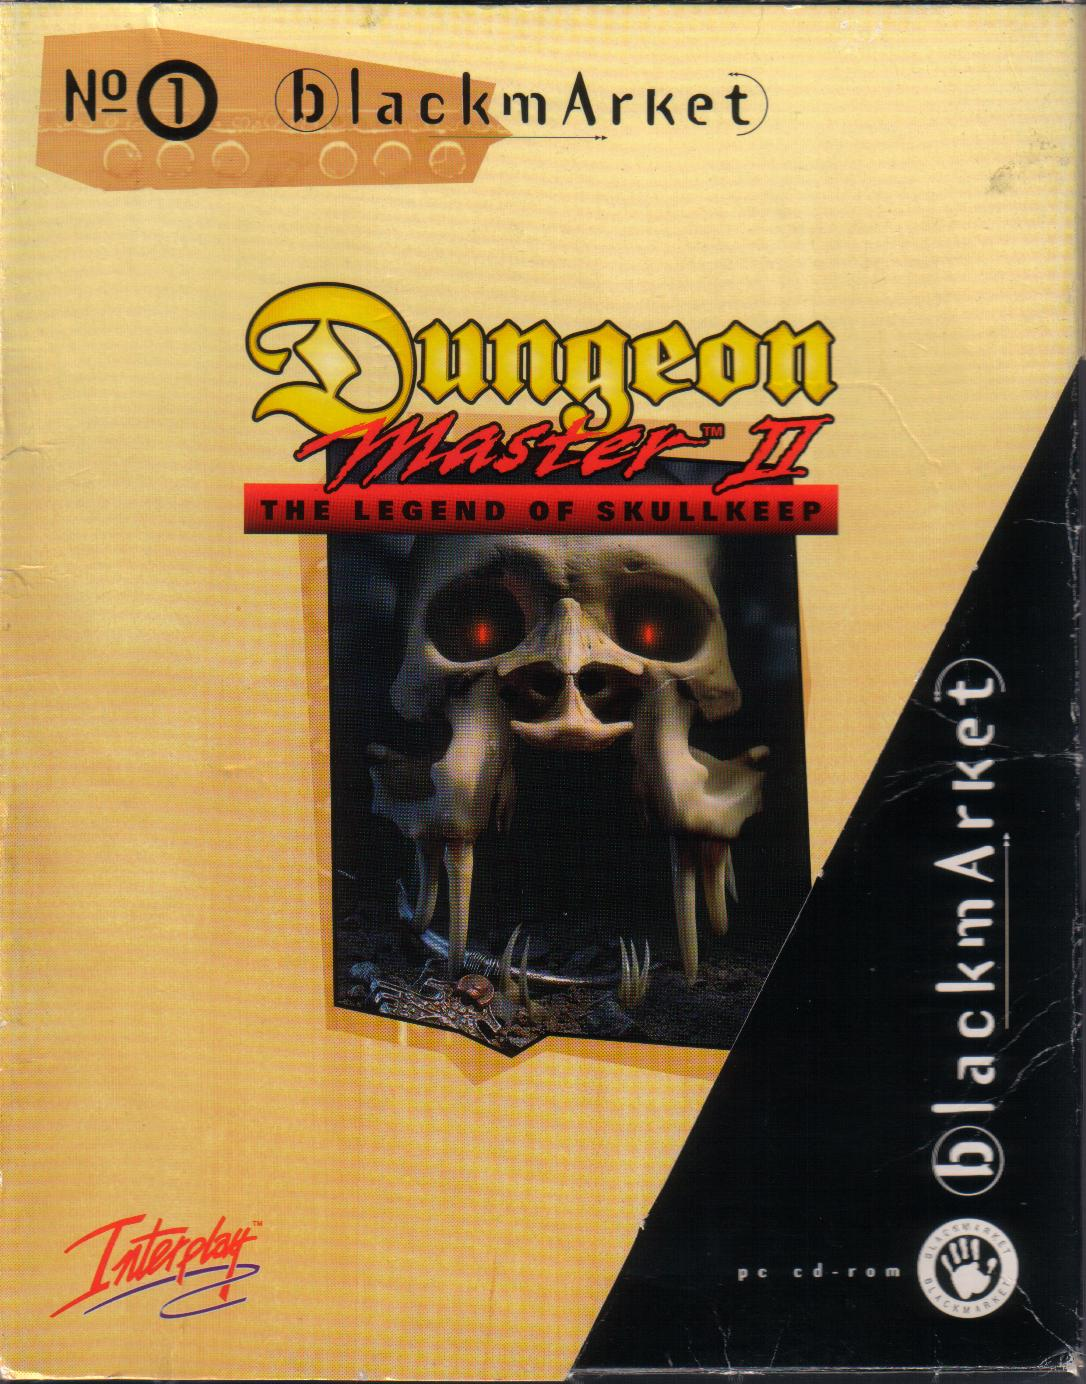 Dungeon Master II for PC (Blackmarket) - Box Front